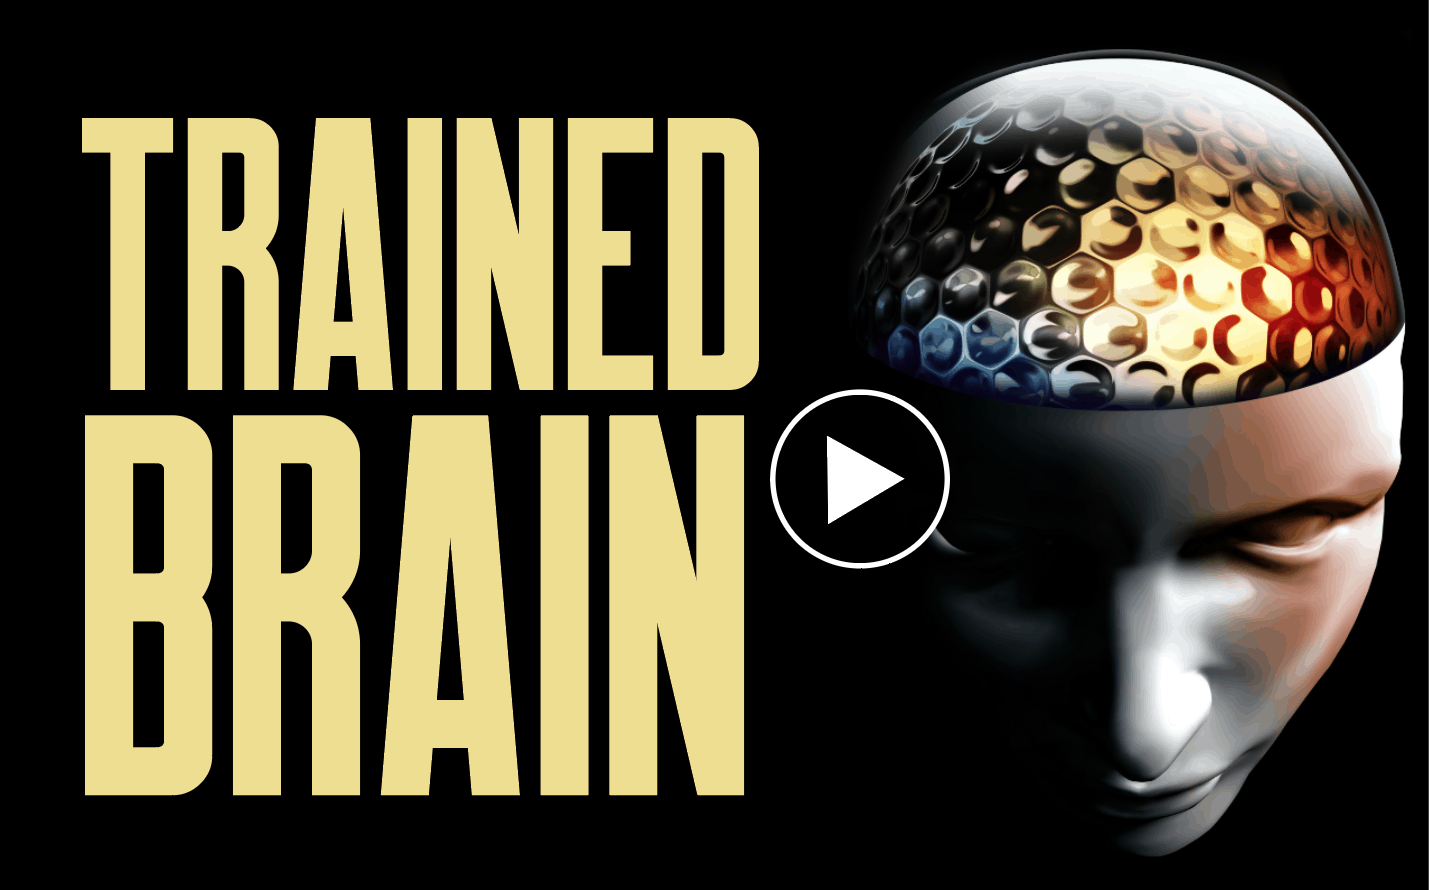 trained brain, mental performance, mental game